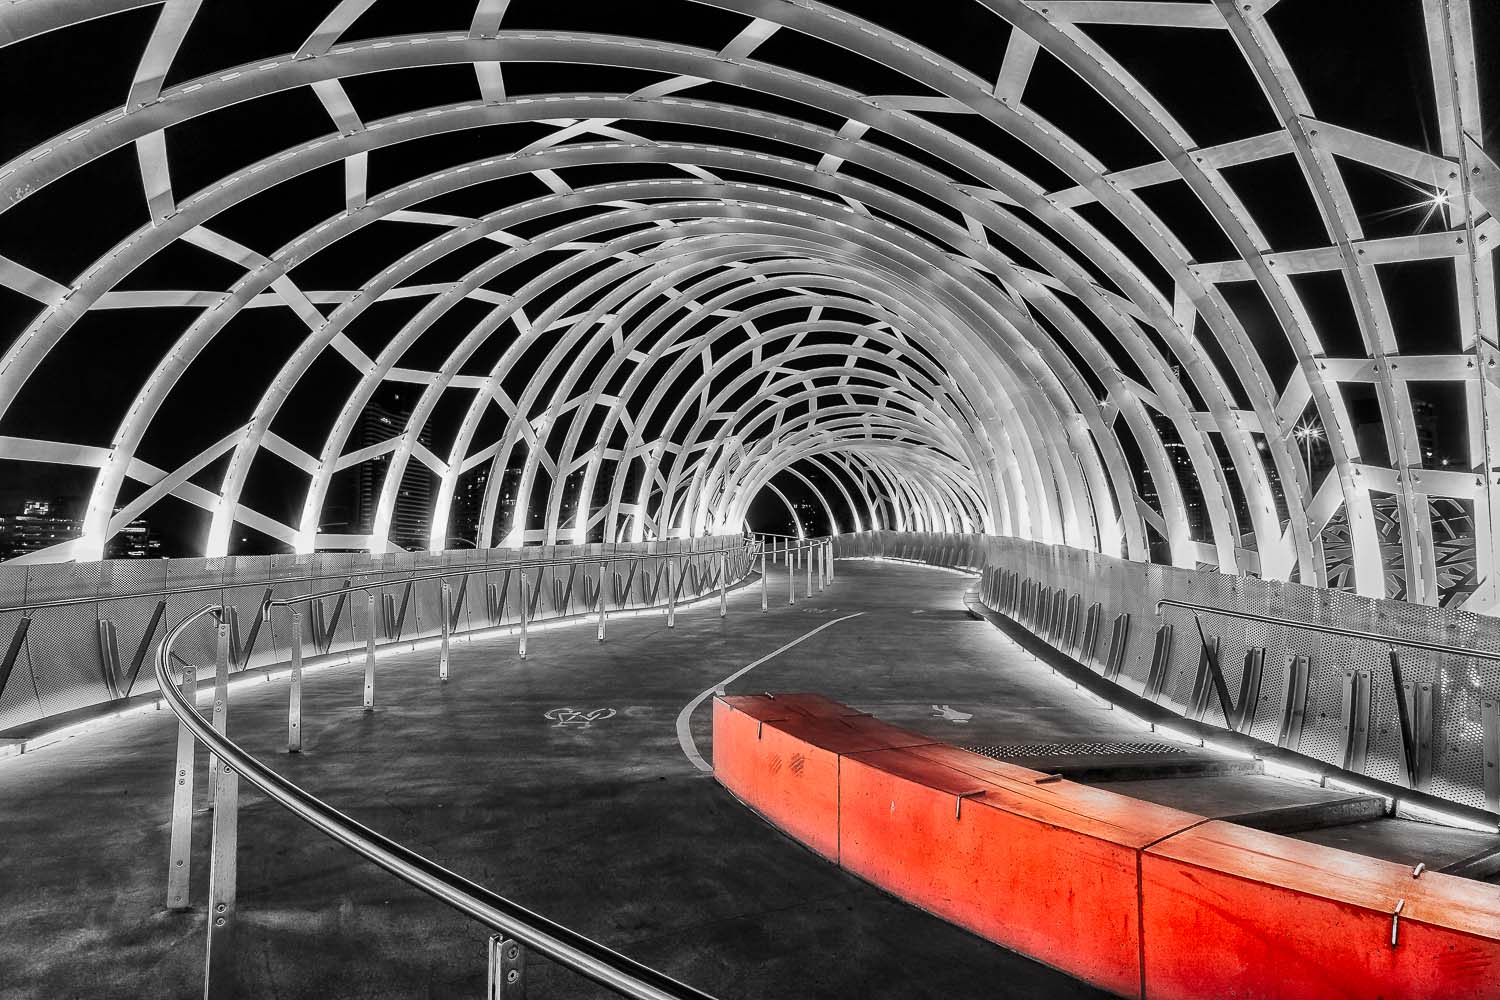 A red barrier provides a splash of    vibrant color    in this otherwise black and white photo of    Web Bridge    in the    Docklands    precinct of Melbourne, Australia.